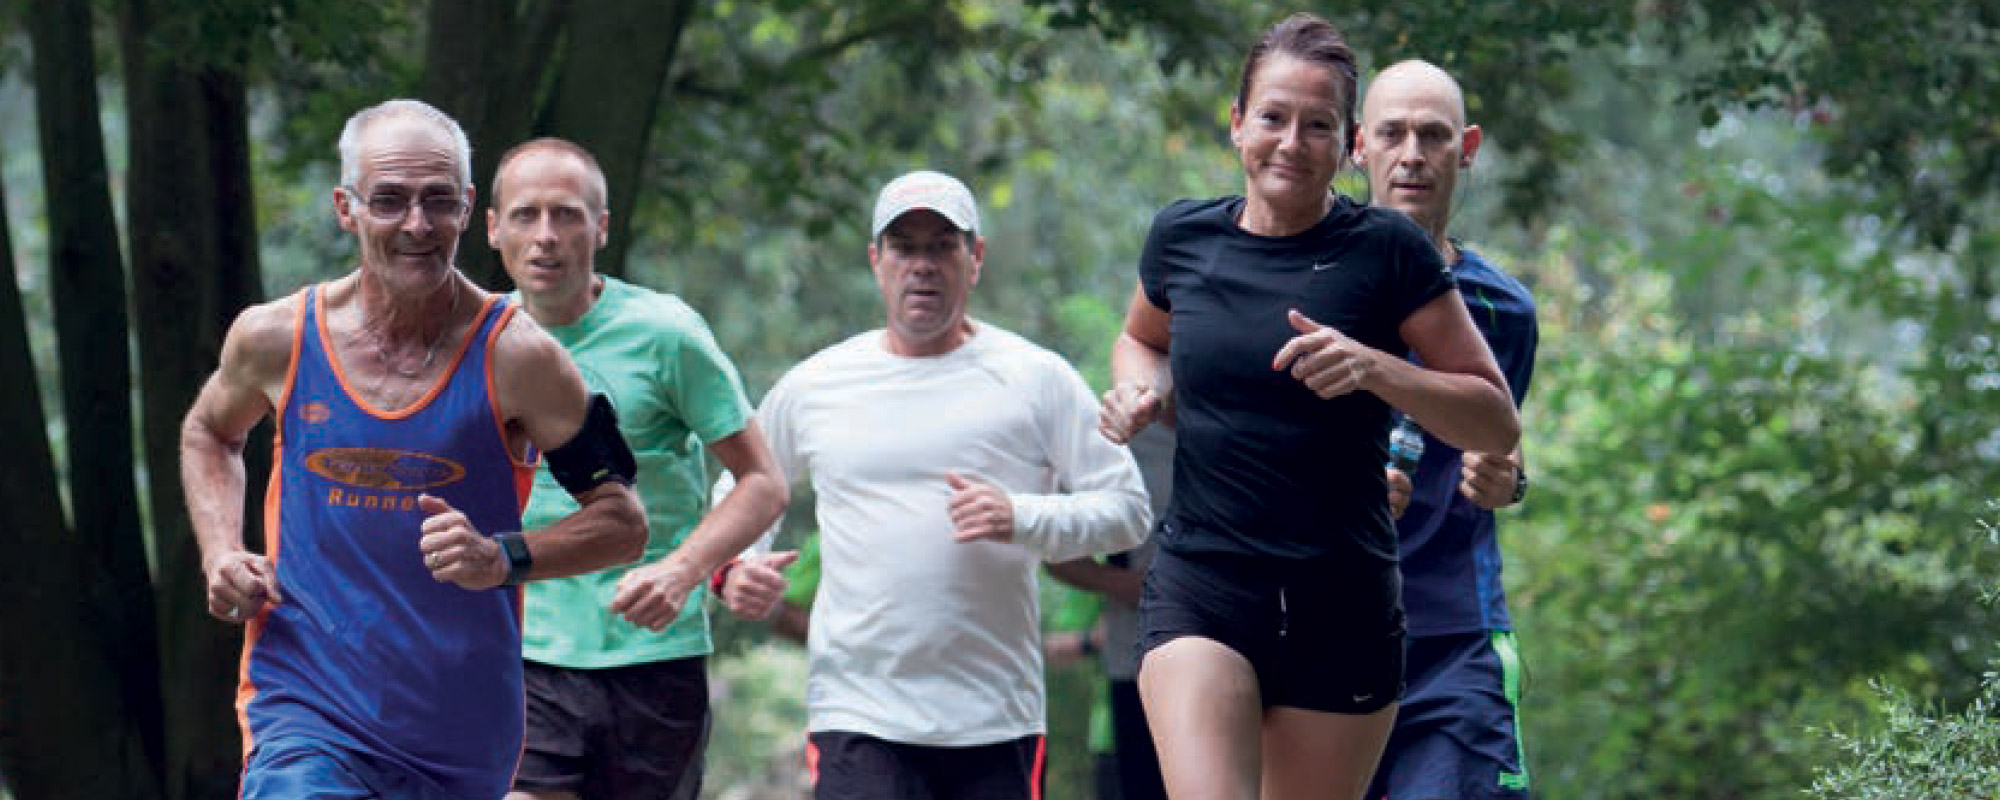 Parkrun: how to build a fitness empire